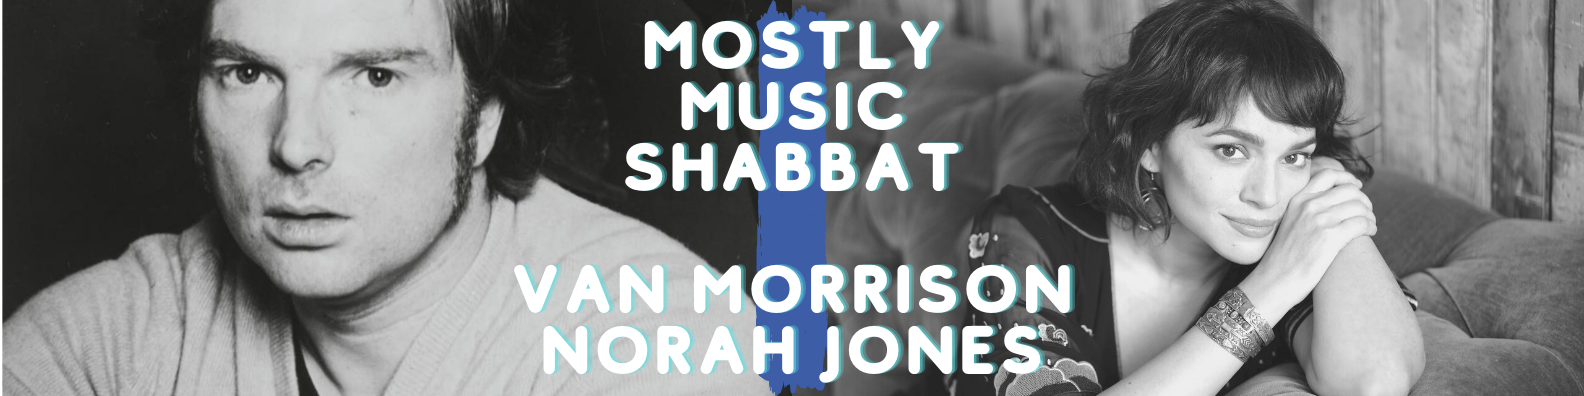 Banner Image for Mostly Music Shabbat